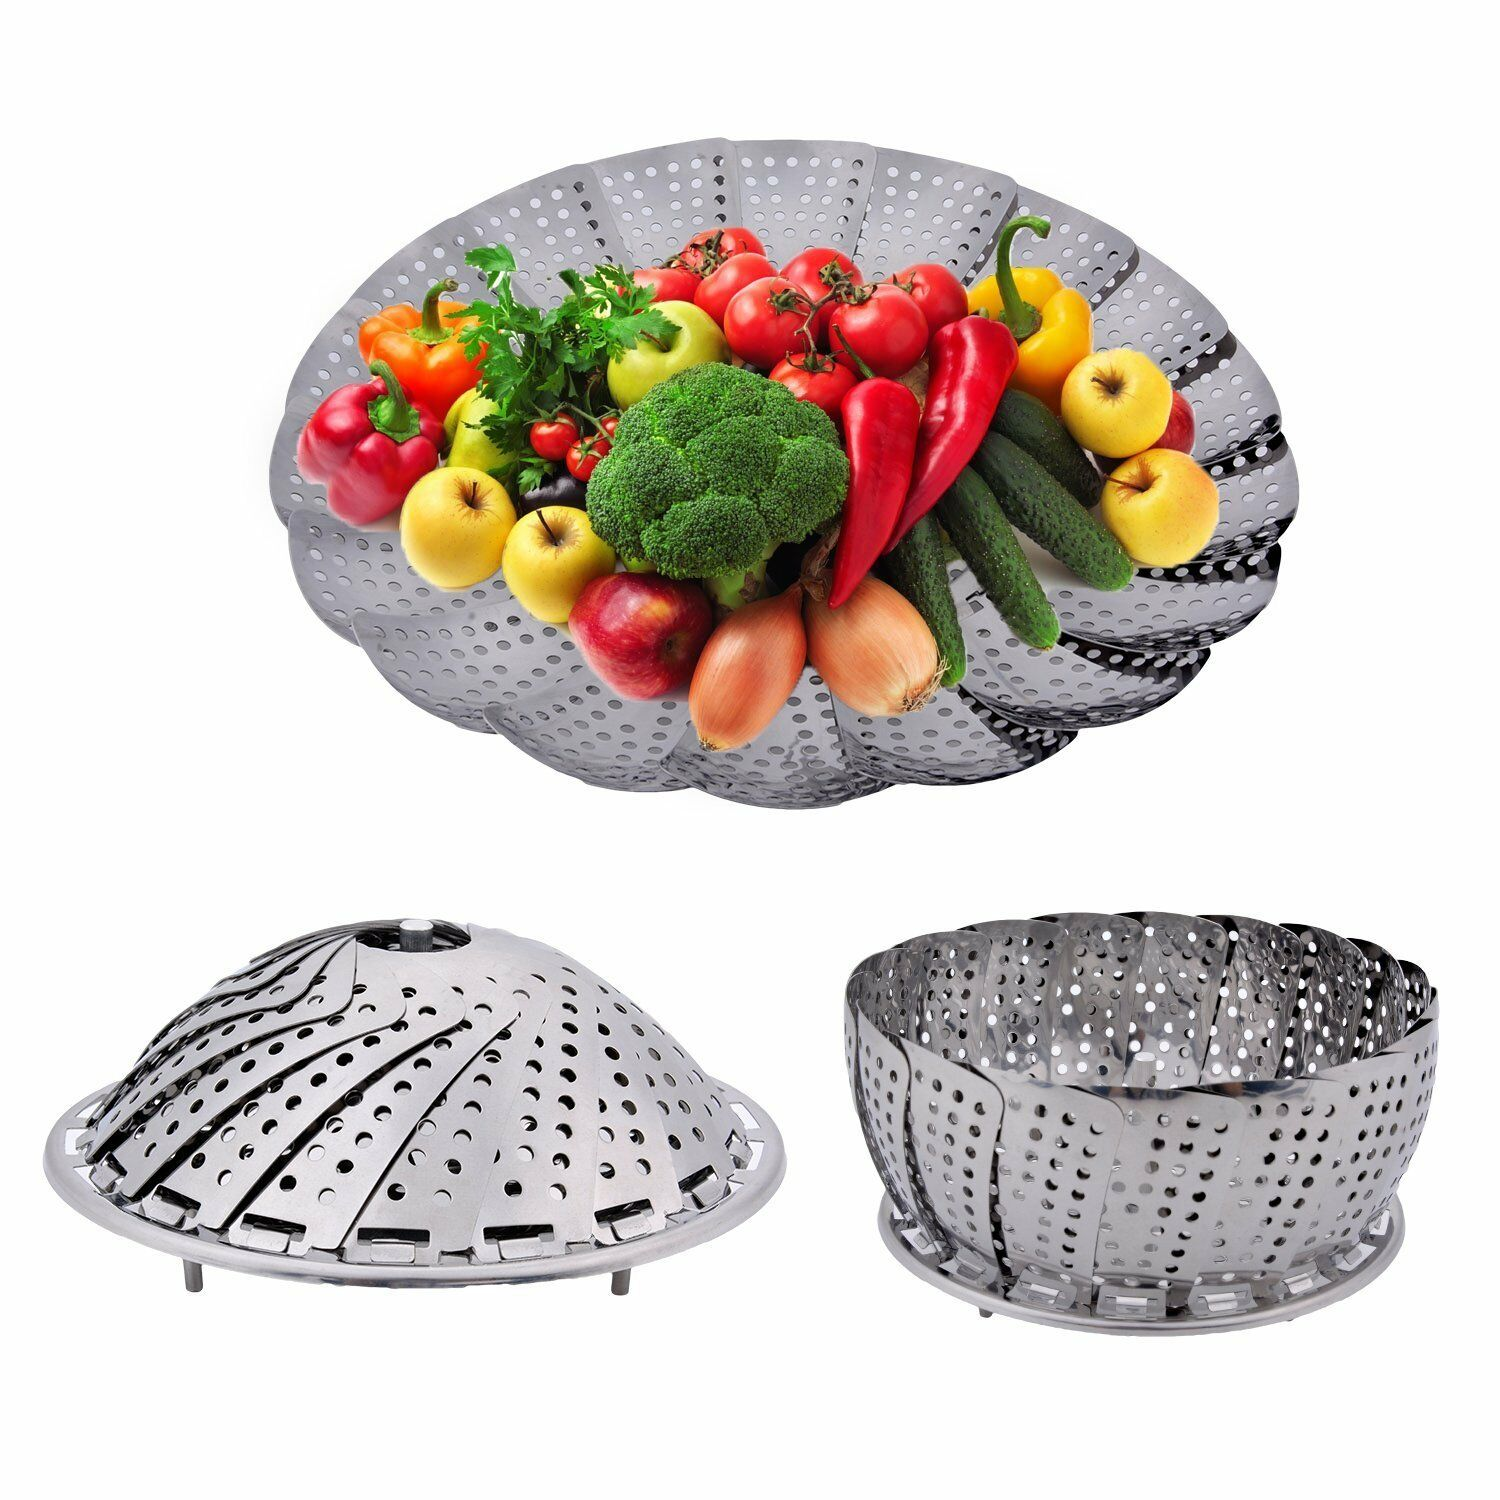 Multifunctional Stainless Mesh Collapsible Folding Food Dish Vegetable Steamer Basket Cooker